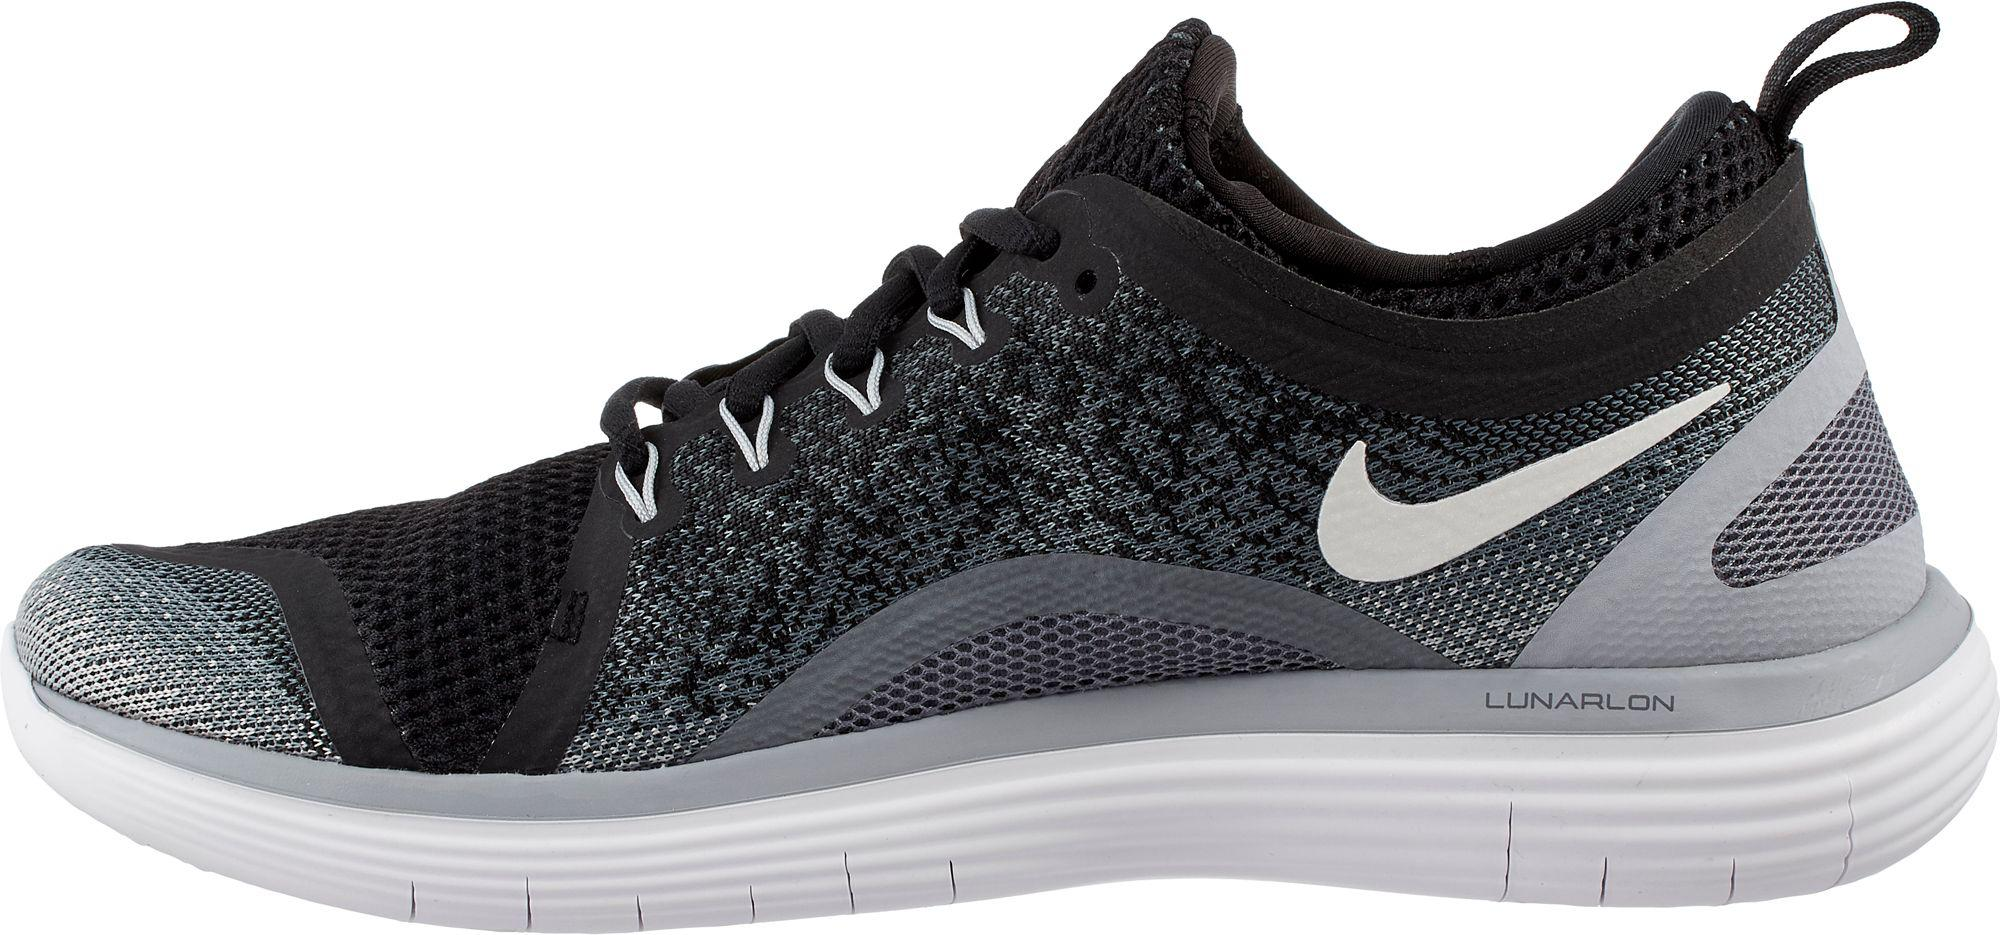 2a98ad5d5dbf Lyst - Nike Free Rn Distance 2 Running Shoes in Black for Men